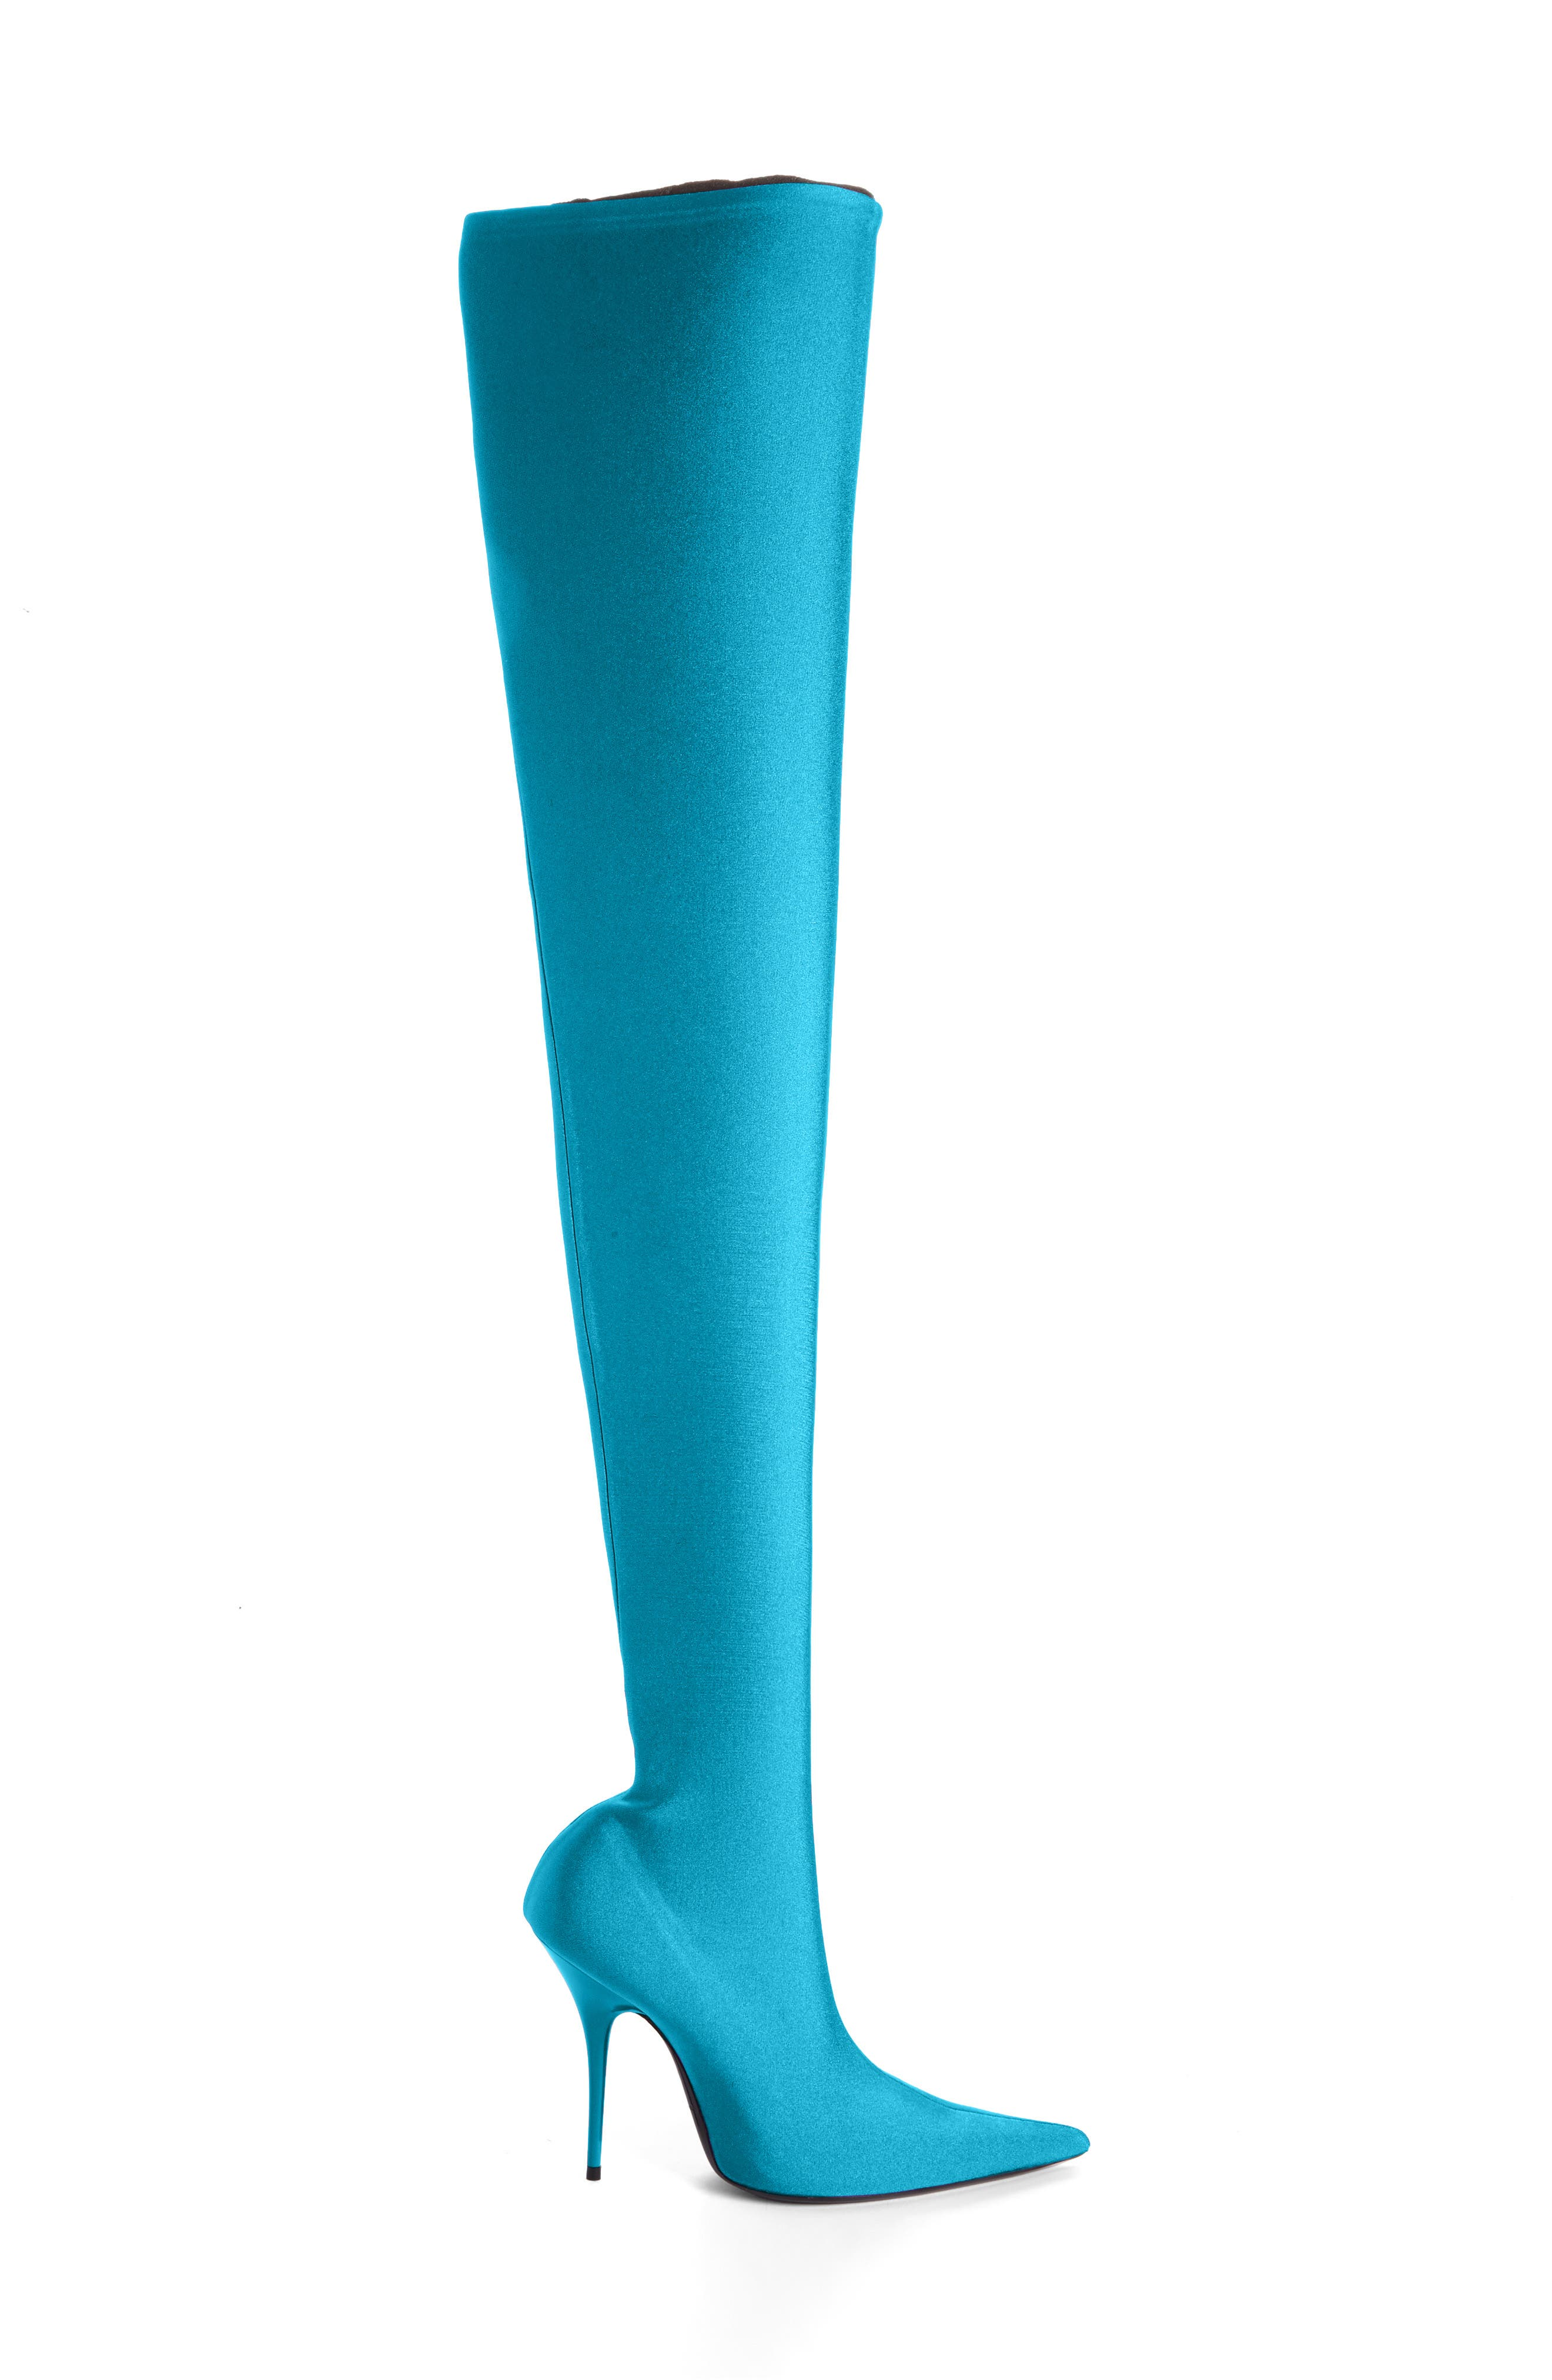 Thigh High Boot,                             Alternate thumbnail 2, color,                             400